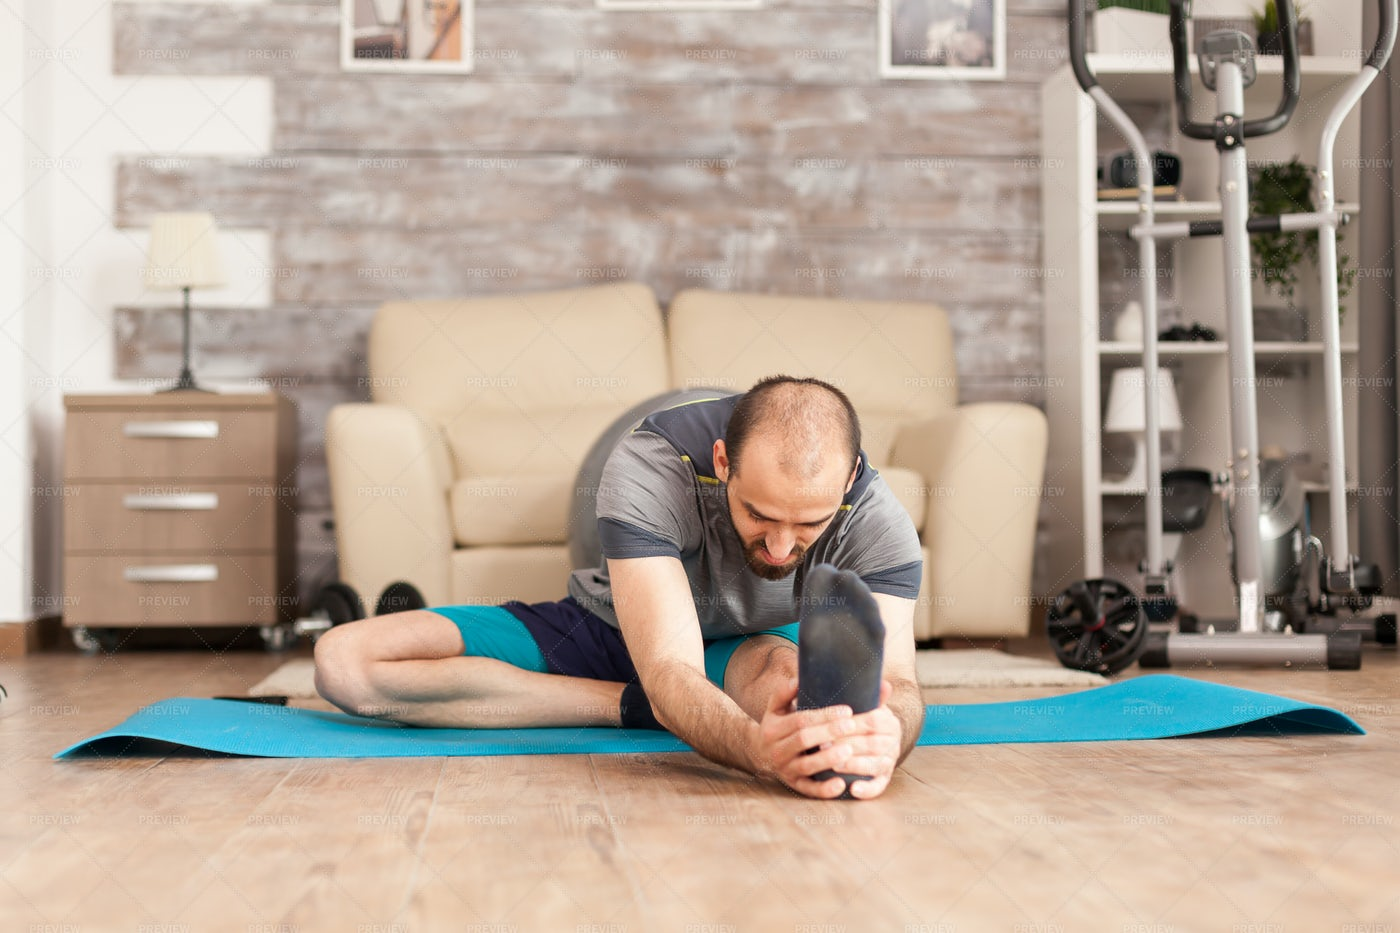 Stretching Before A Workout: Stock Photos